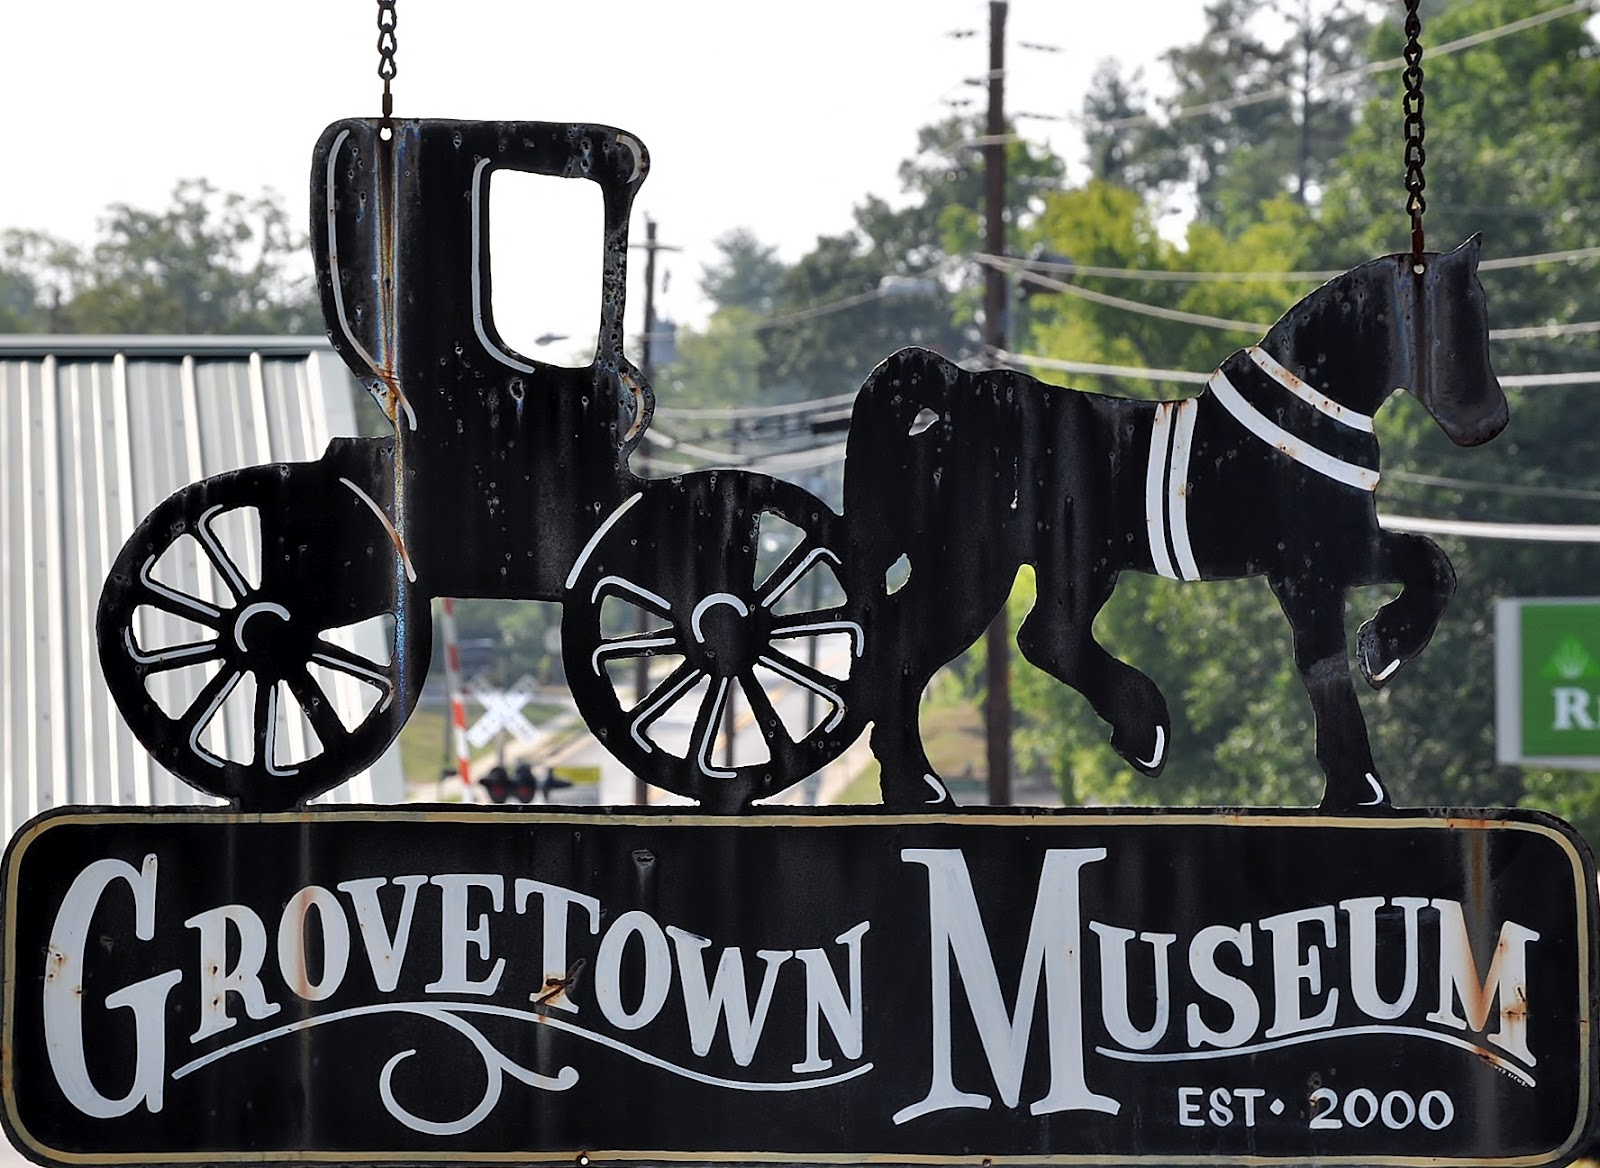 grovetown black singles Travel info, sports, demographic data, and general statistics about the city of grovetown, ga.